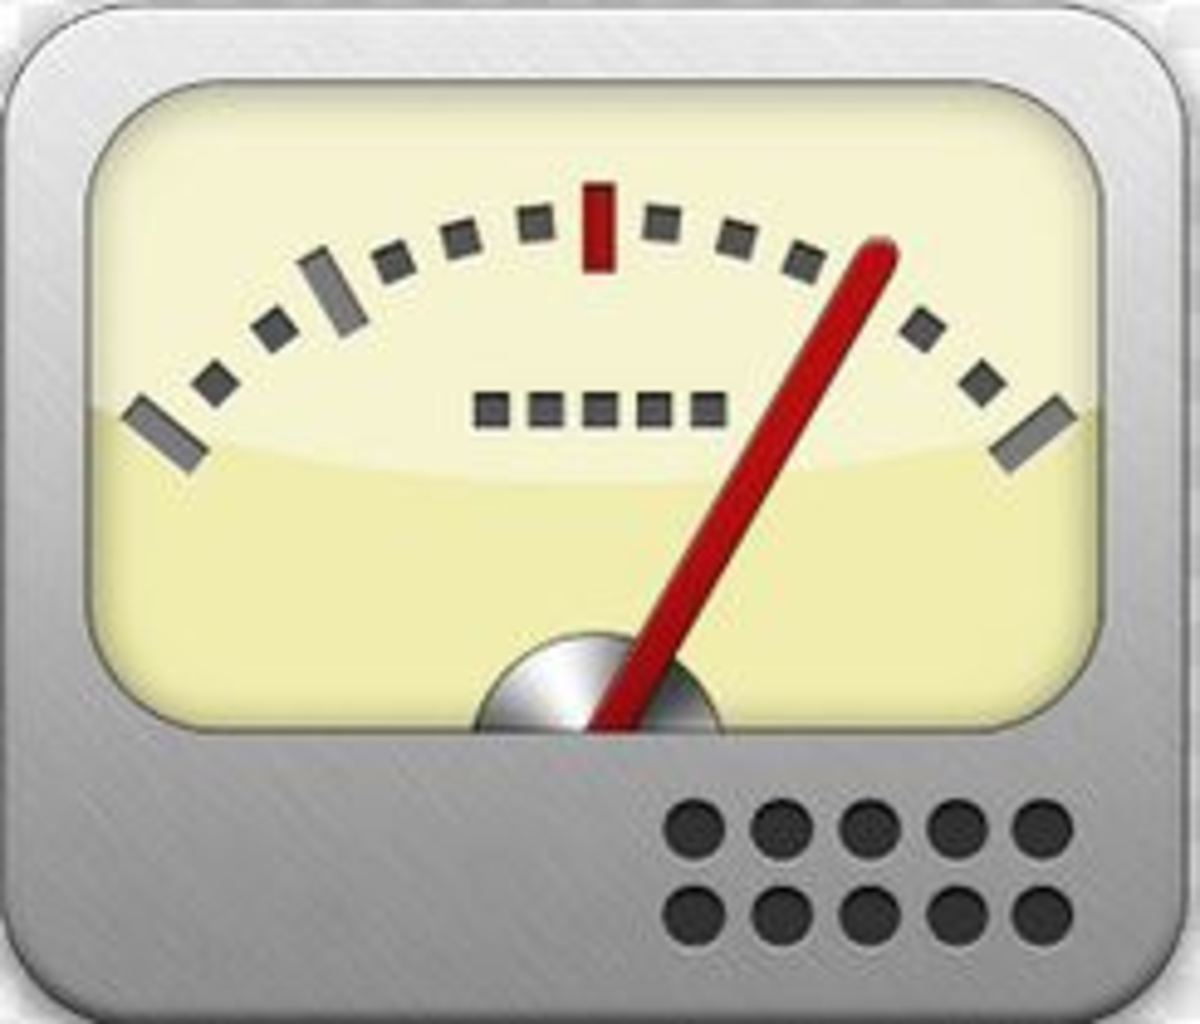 essential-free-apps-to-have-on-your-iphone-or-android-as-a-working-musician